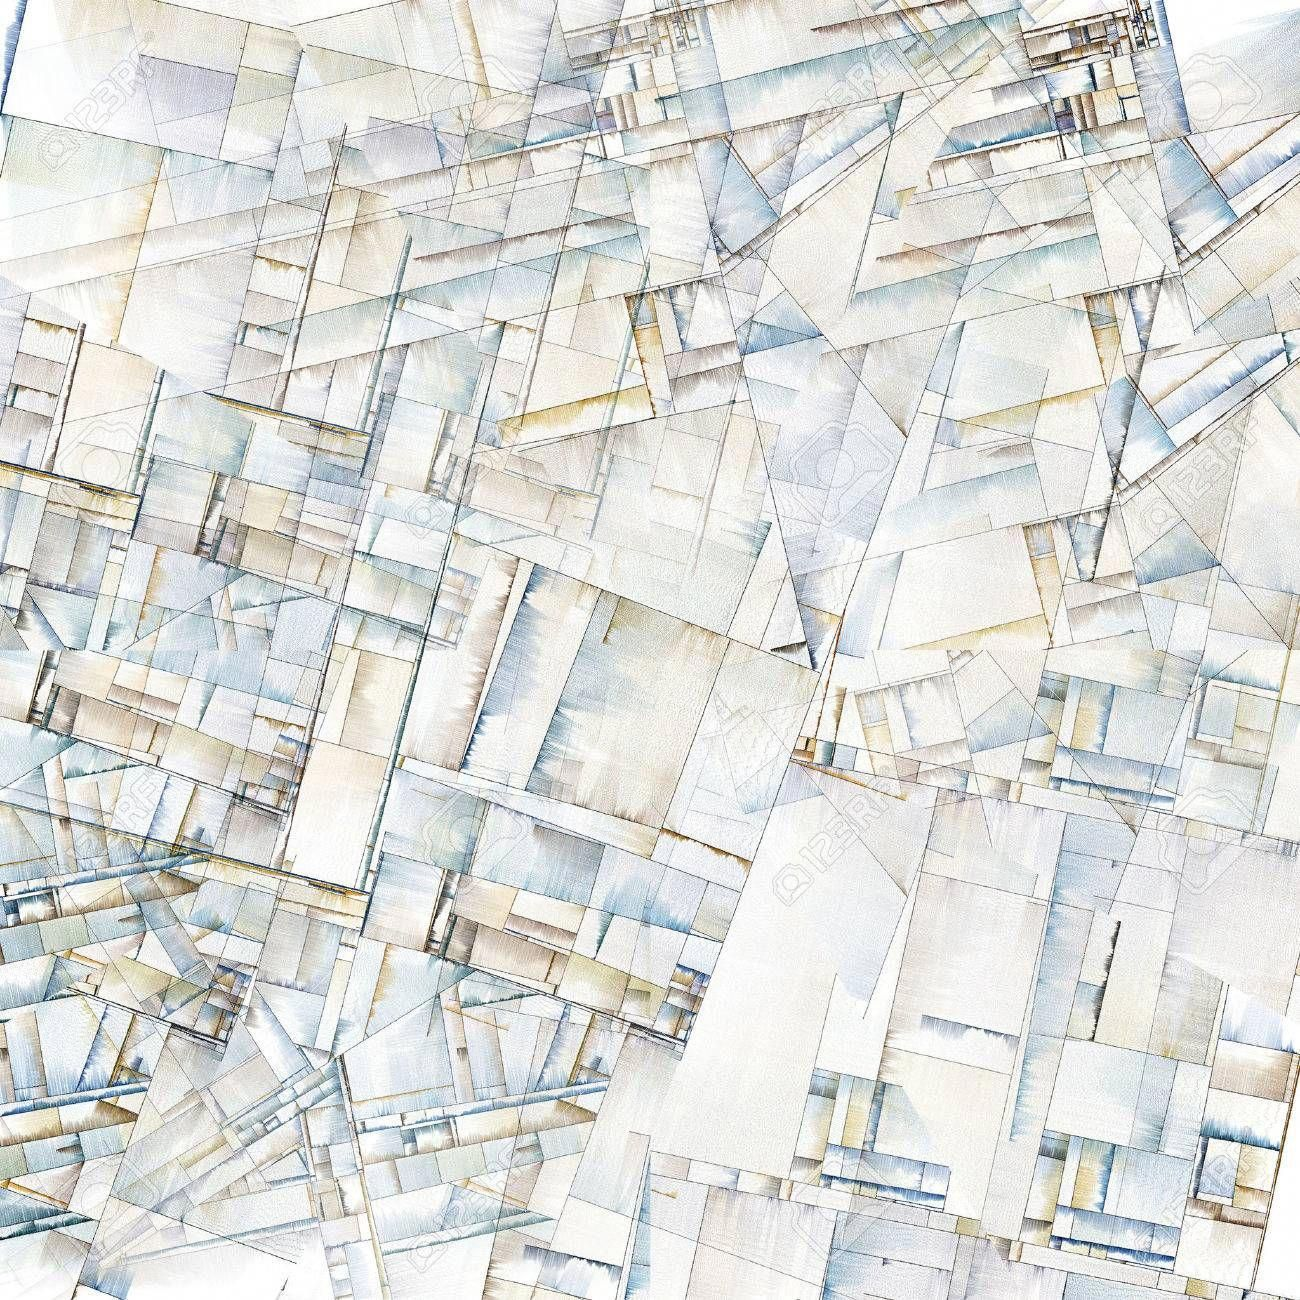 Abstract Art Reminiscent of City Blocks ,